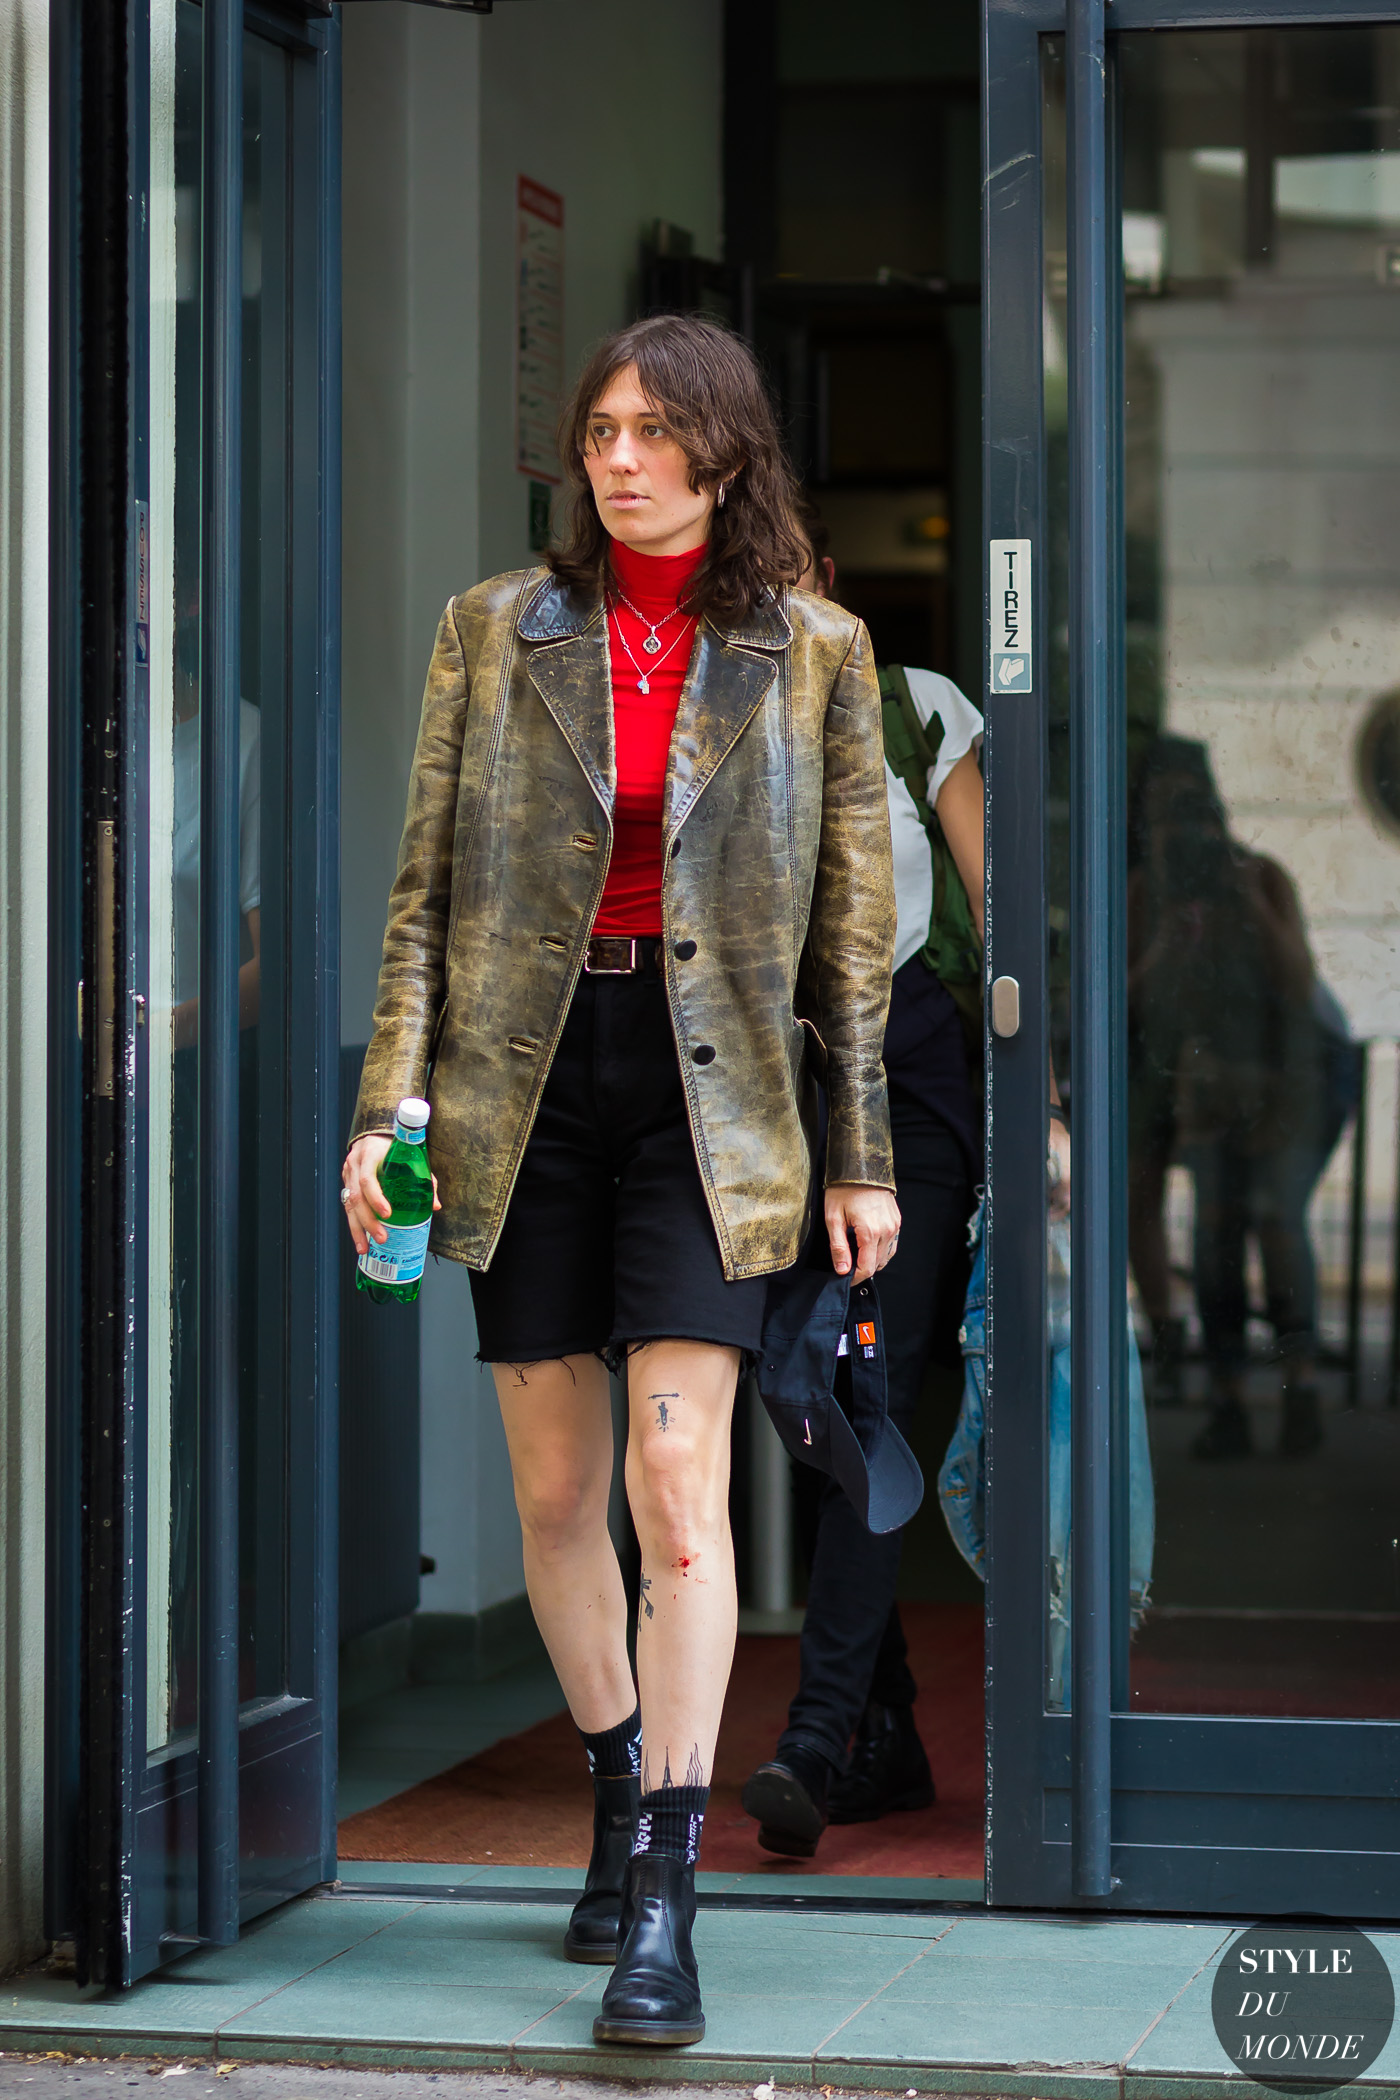 Maud Escudier Street Style Street Fashion Streetsnaps by STYLEDUMONDE Street Style Fashion Photography